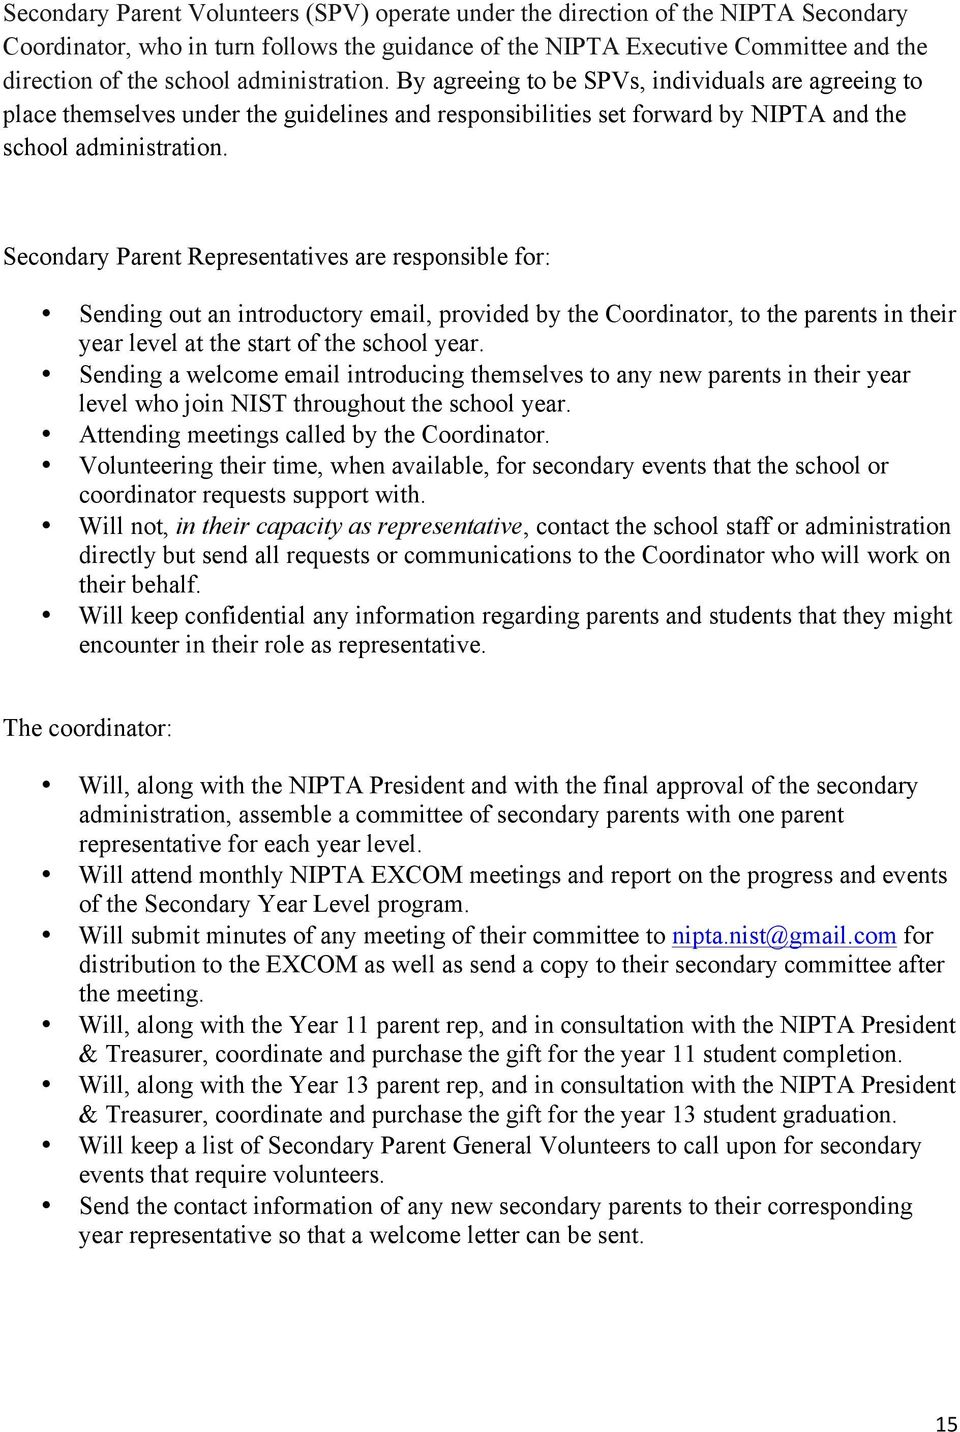 Secondary Parent Representatives are responsible for: Sending out an introductory email, provided by the Coordinator, to the parents in their year level at the start of the school year.